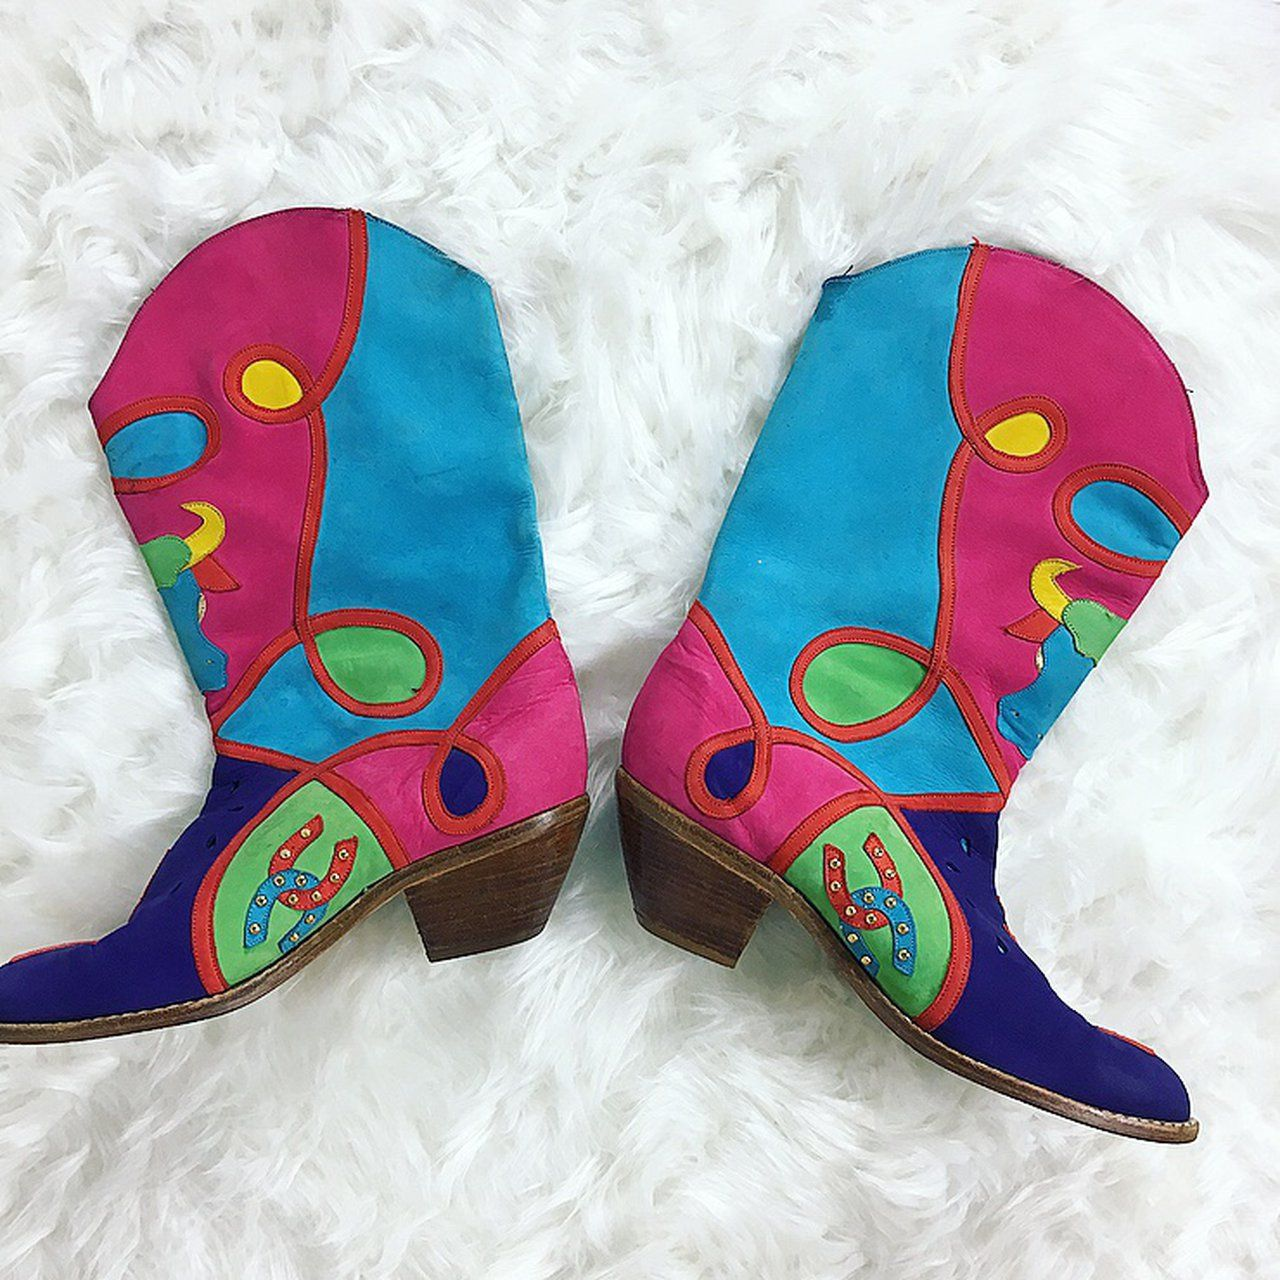 dded8e47637 Listed on Depop by theprairiemisfit | Shoezies | Boots, Cowboy boots ...